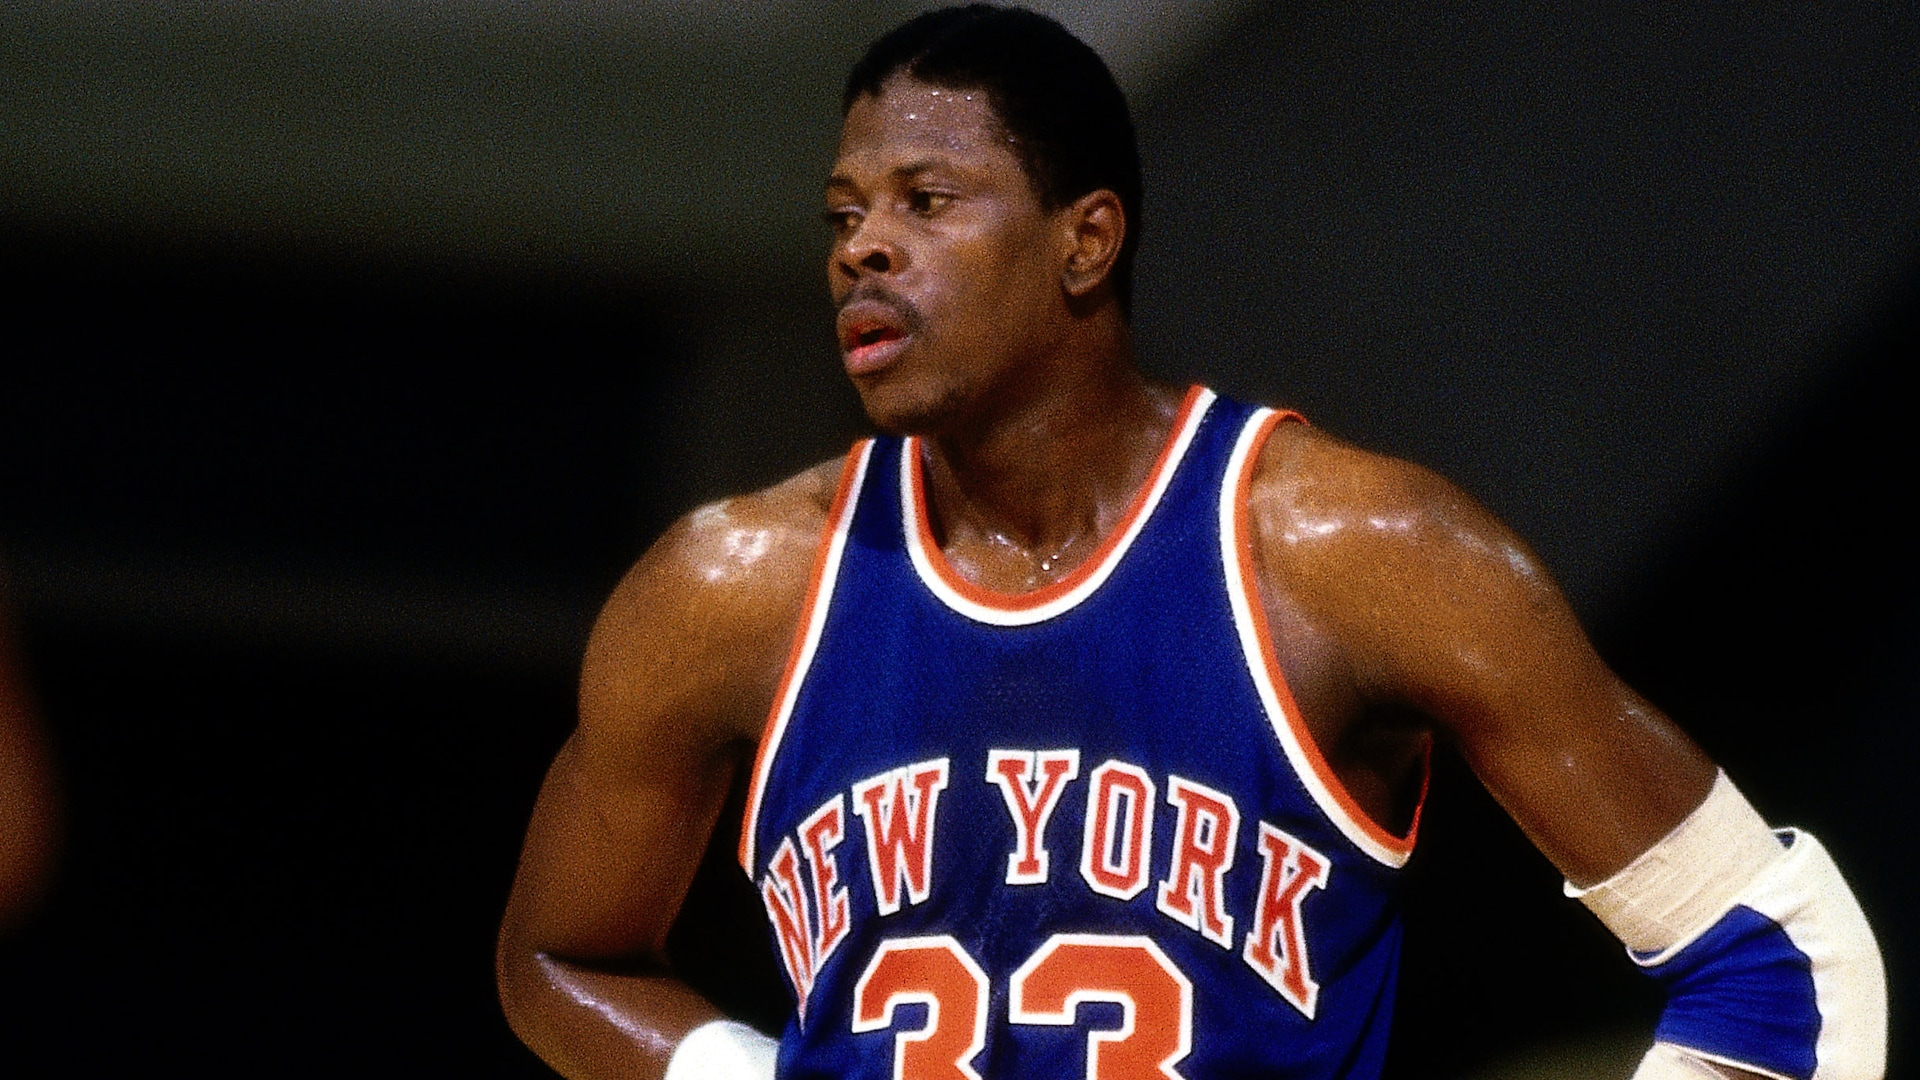 Knicks great Patrick Ewing out of hospital after coronavirus diagnosis